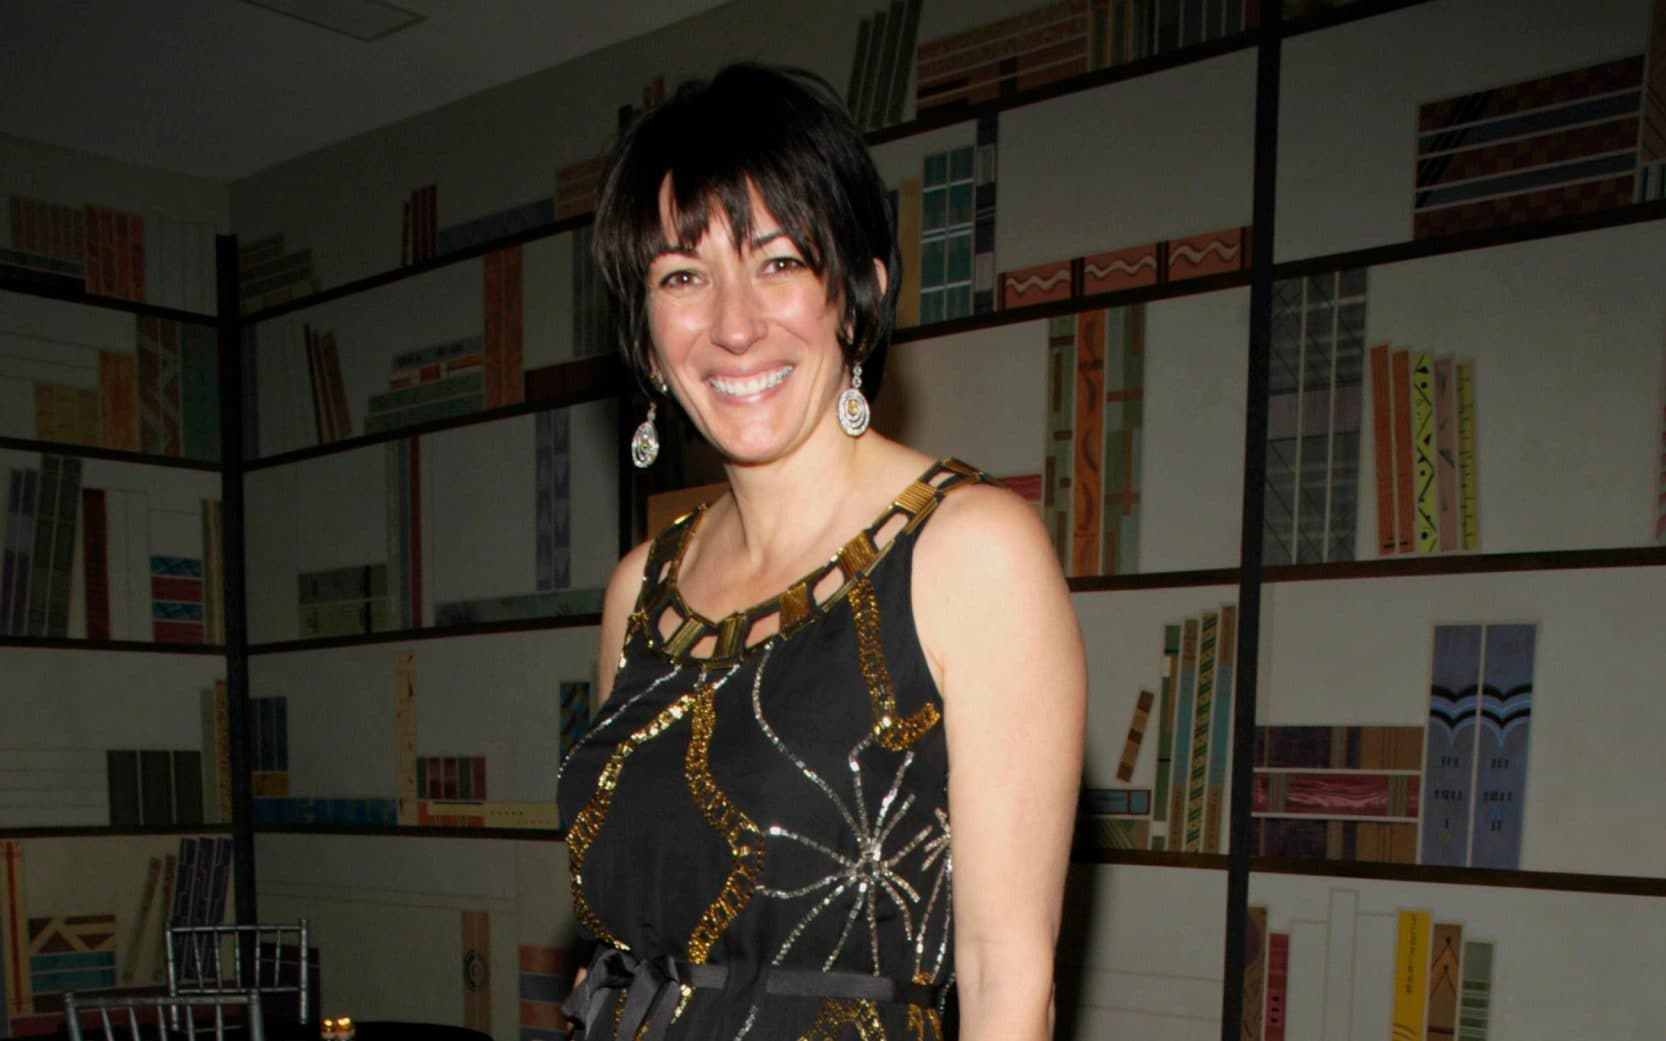 Ghislaine Maxwell could not contain frustration as she pounded desk during bad tempered deposition